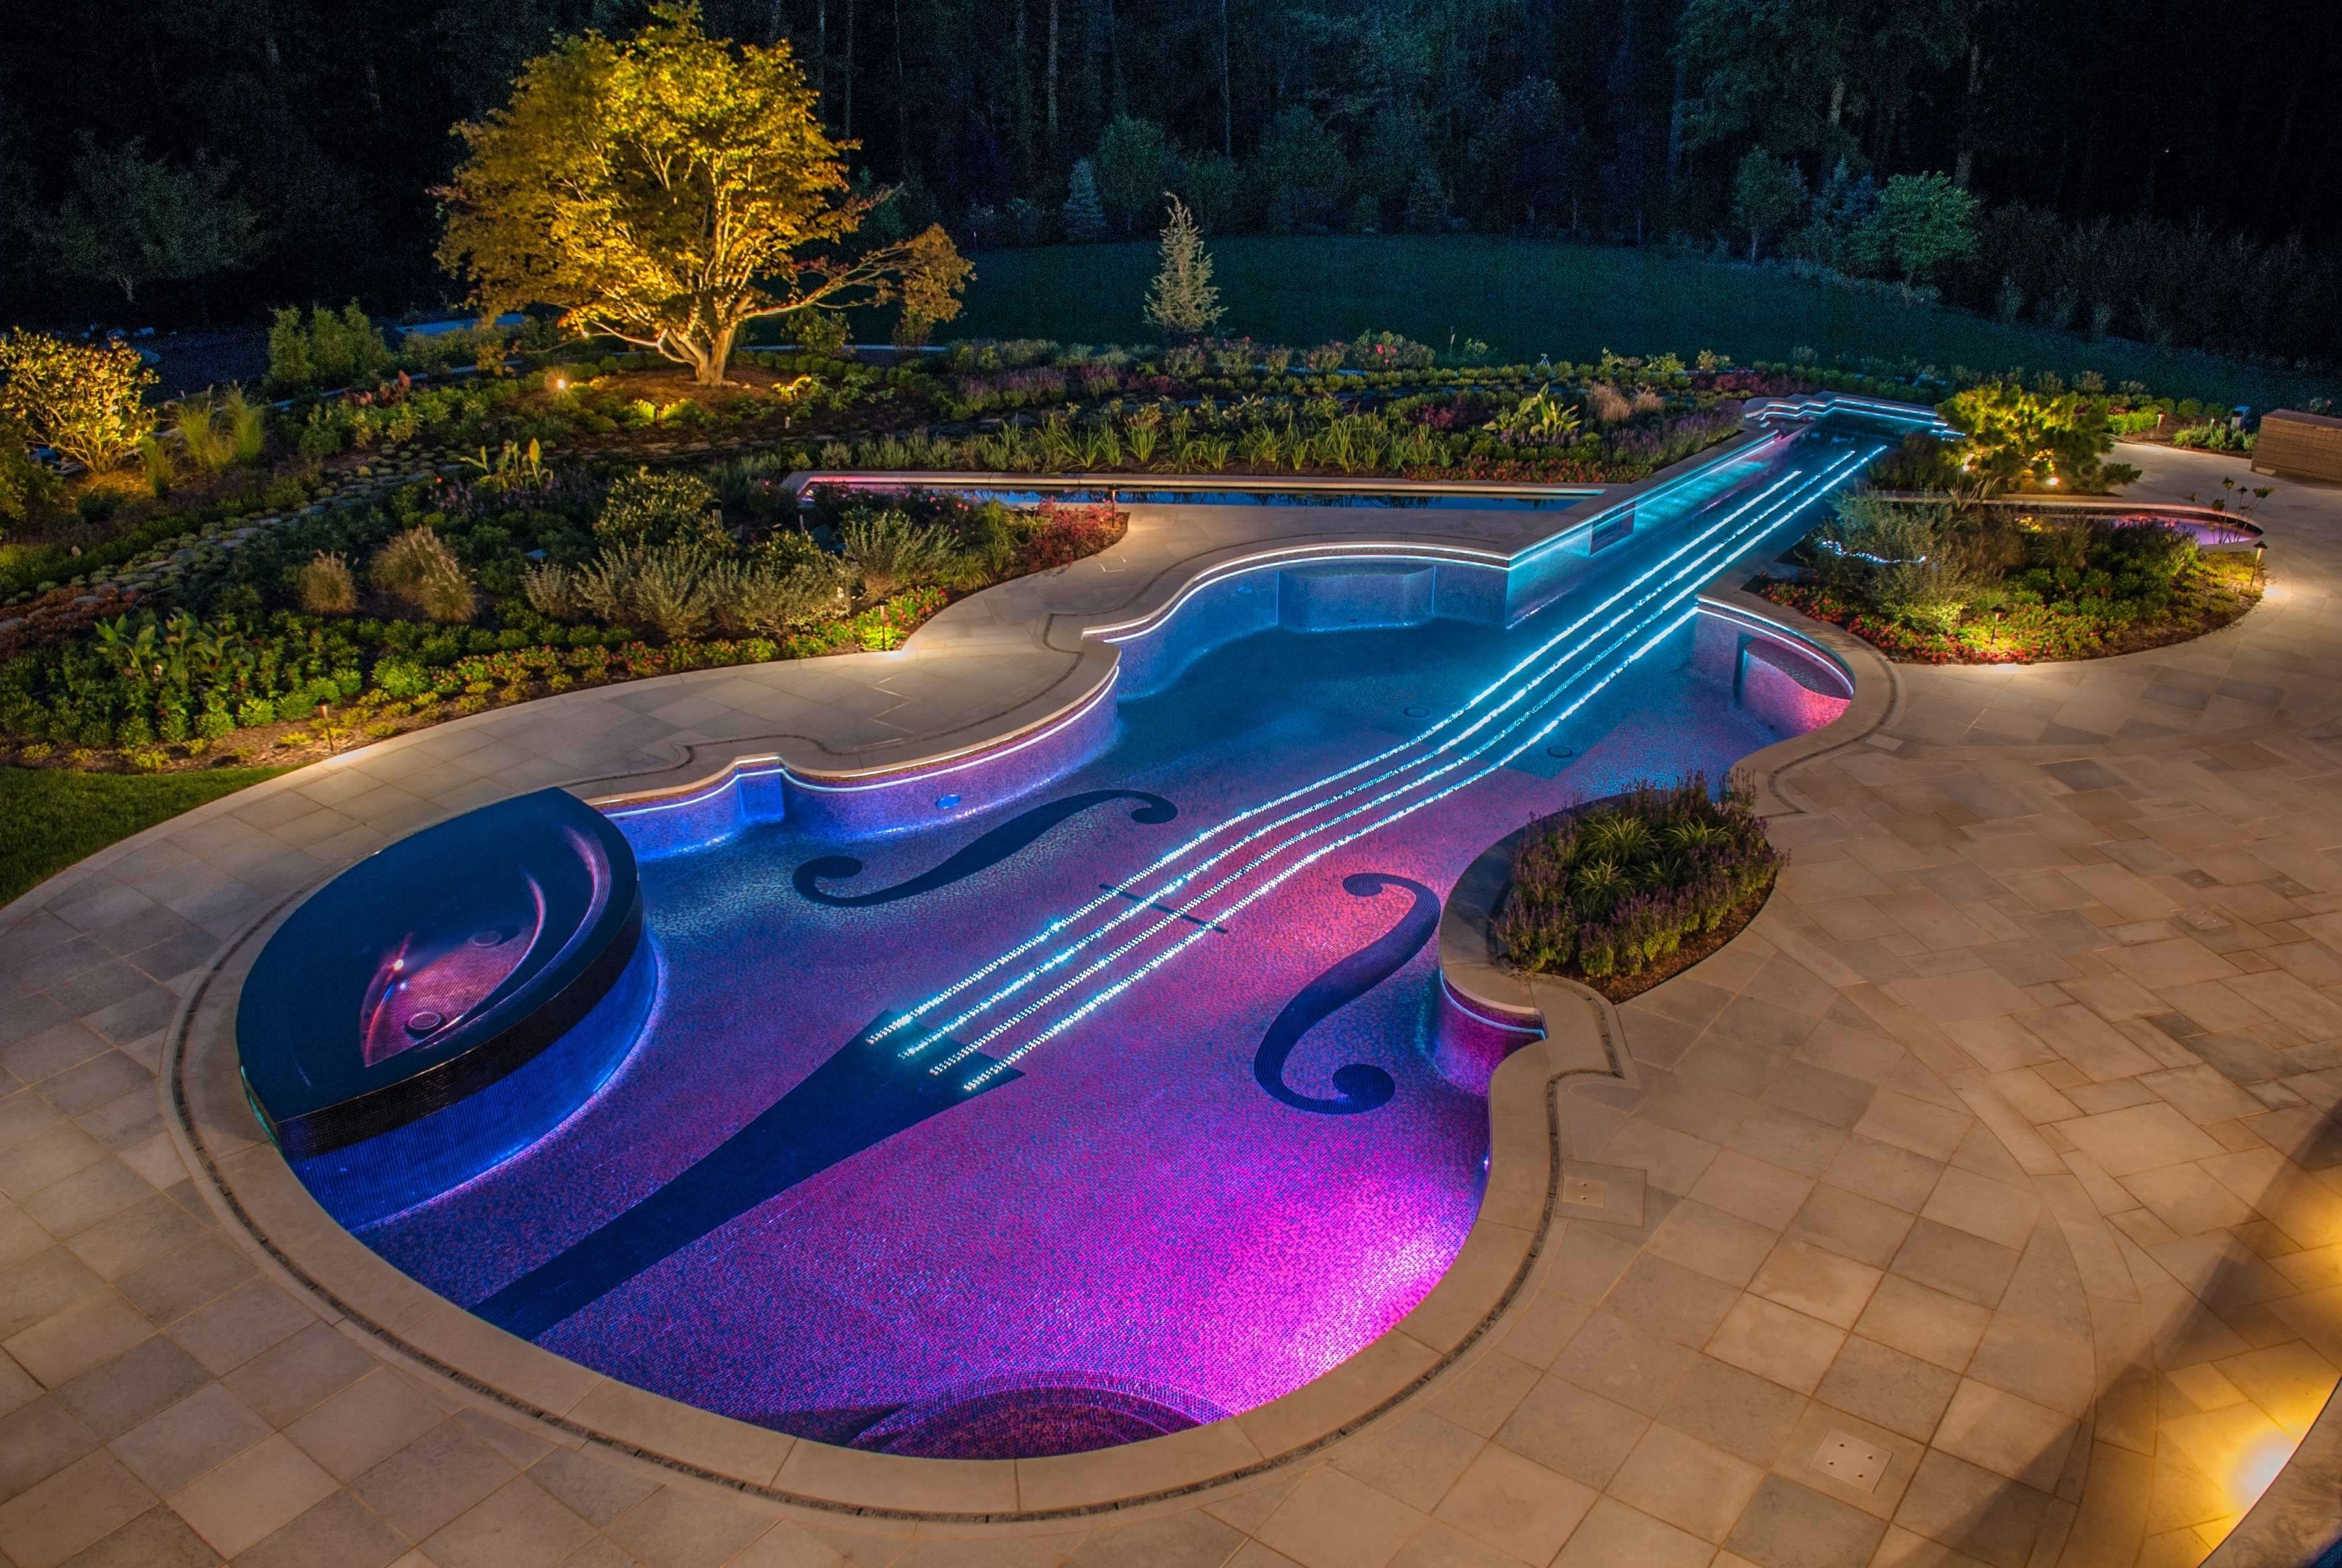 Craziest Pool Designs In The World Photos Architectural Digest